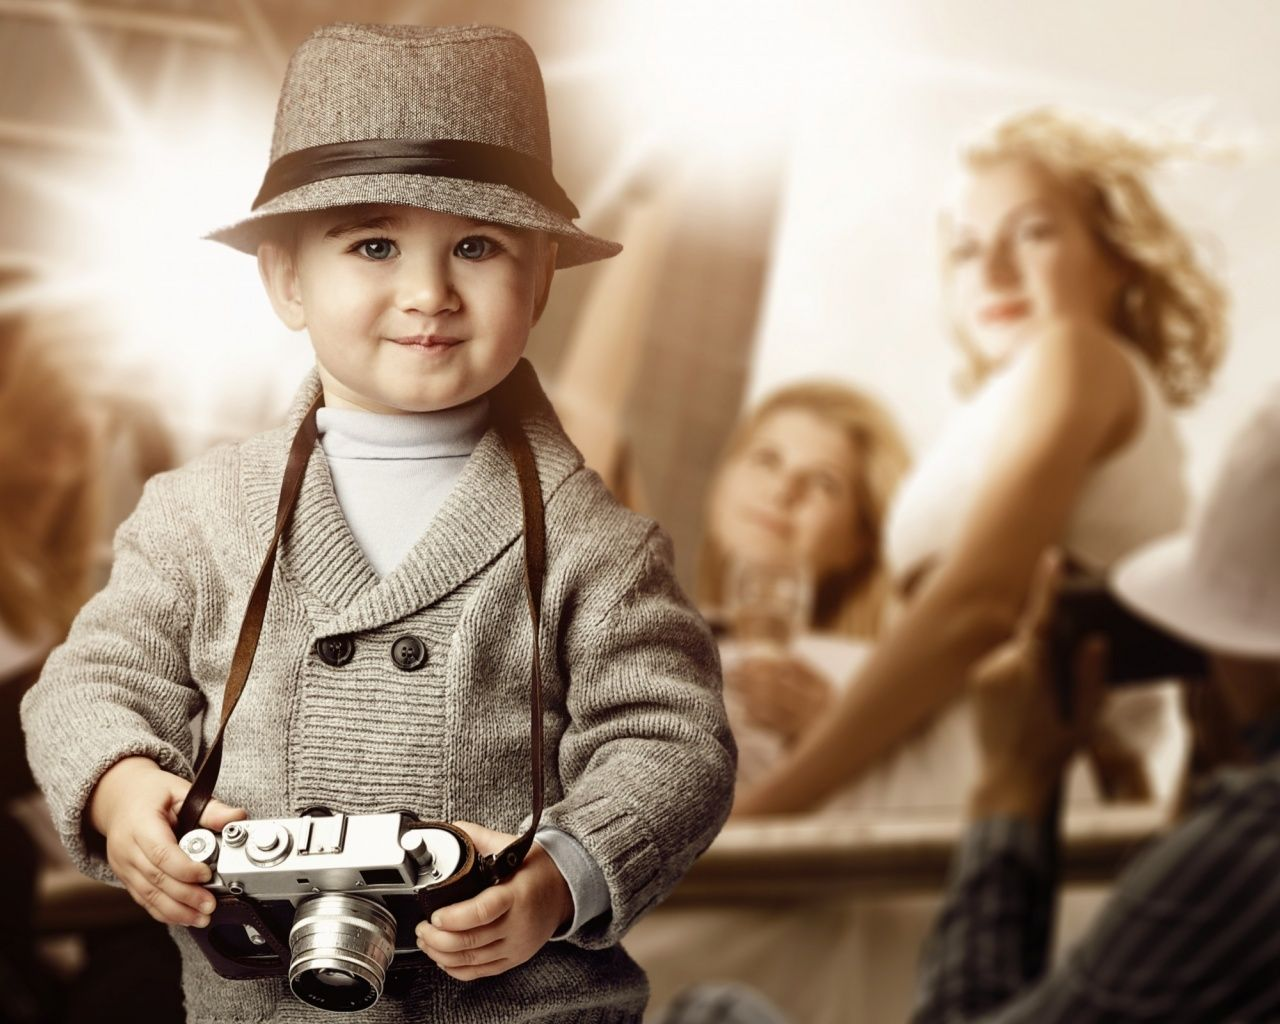 Beautiful Baby Boy with camera | Cute Babies Wallpapers ...